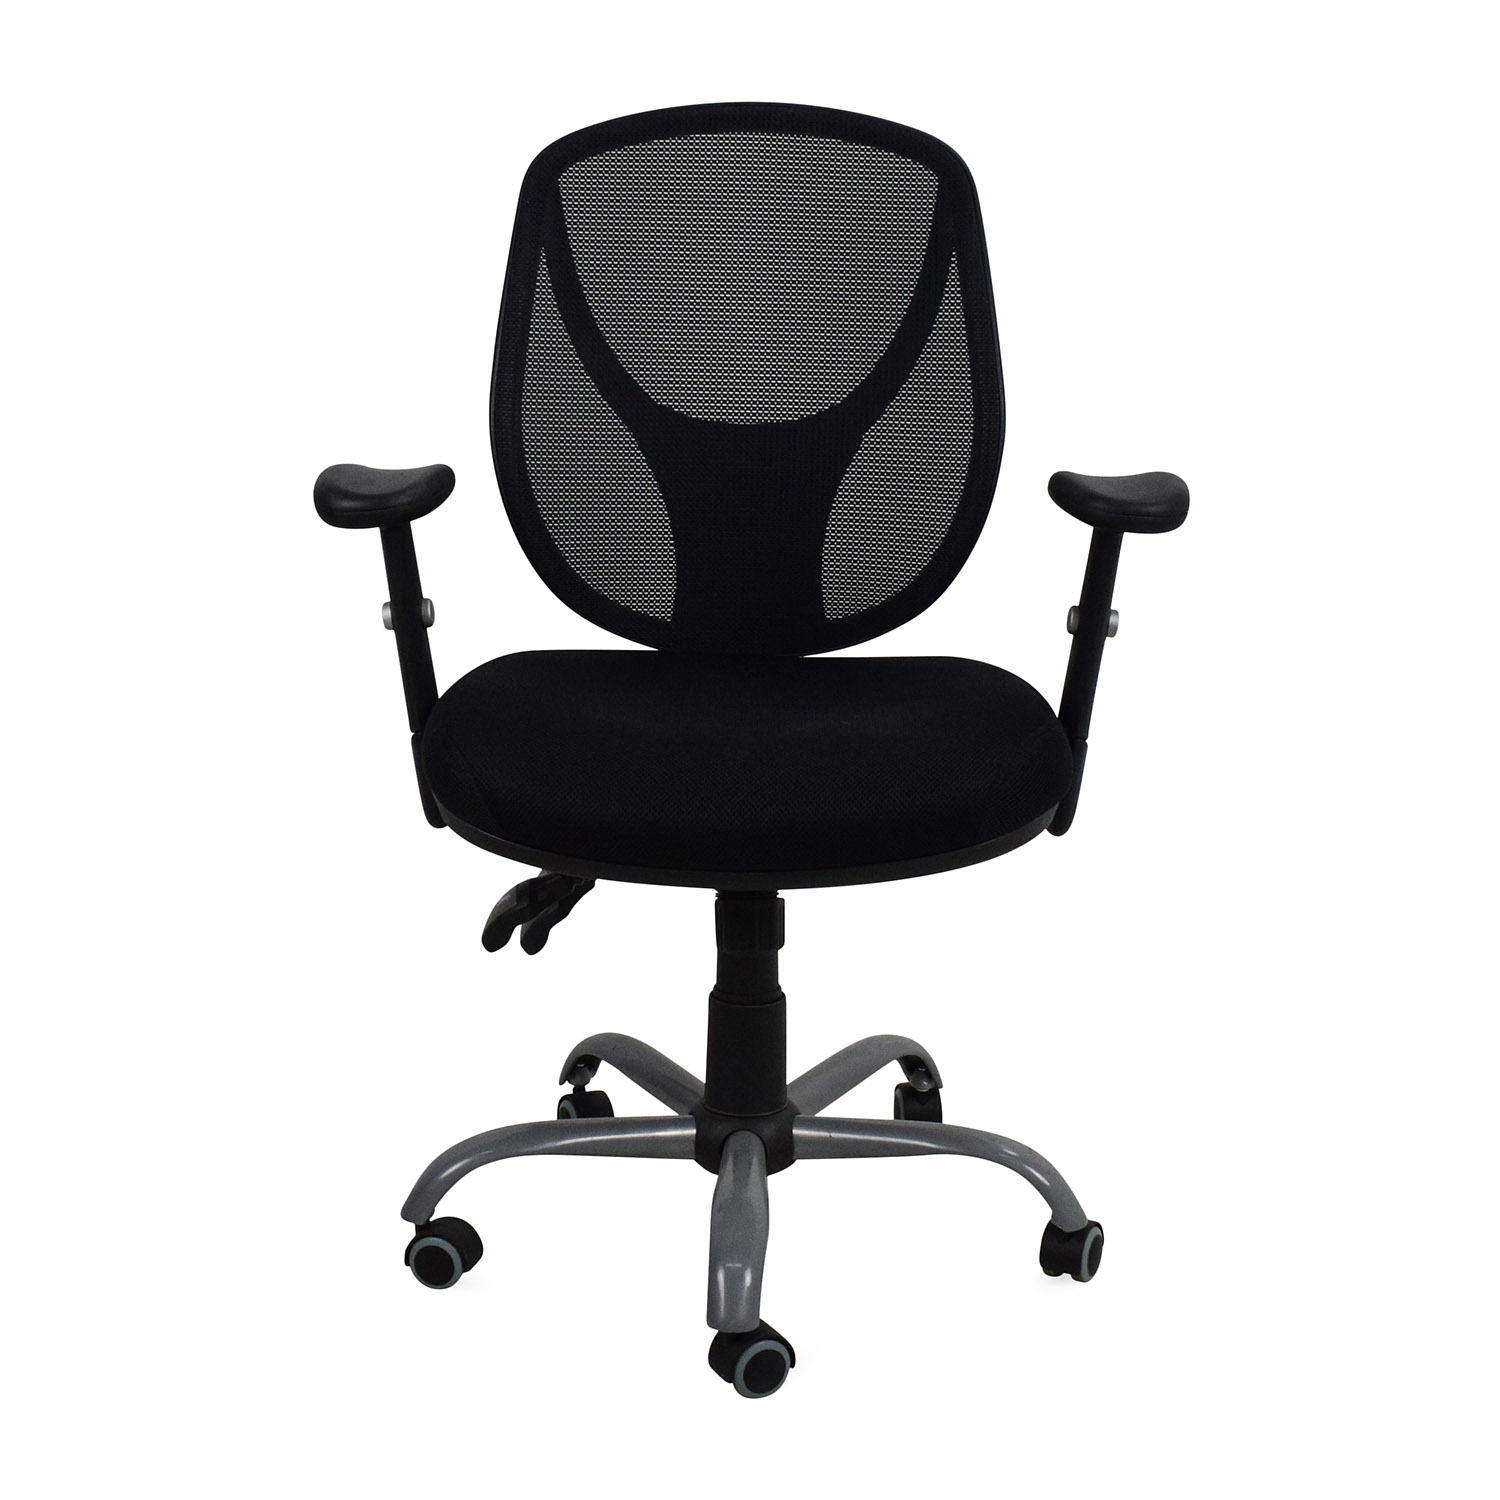 Staples Staples Acadia Ergonomic Mesh Office Chair for sale